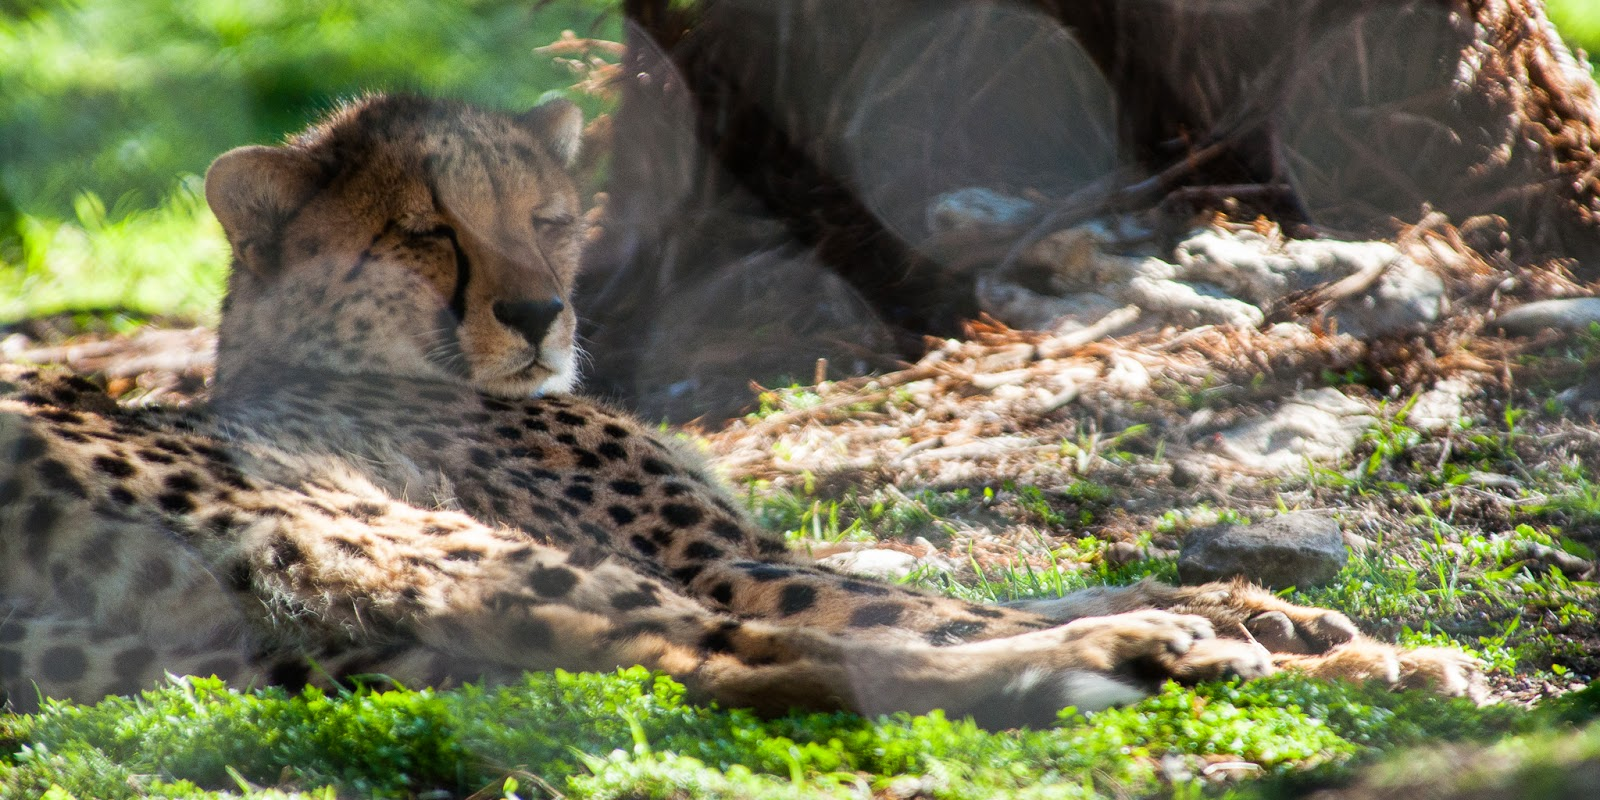 Cheetah, Fossil Rim Wildlife Center